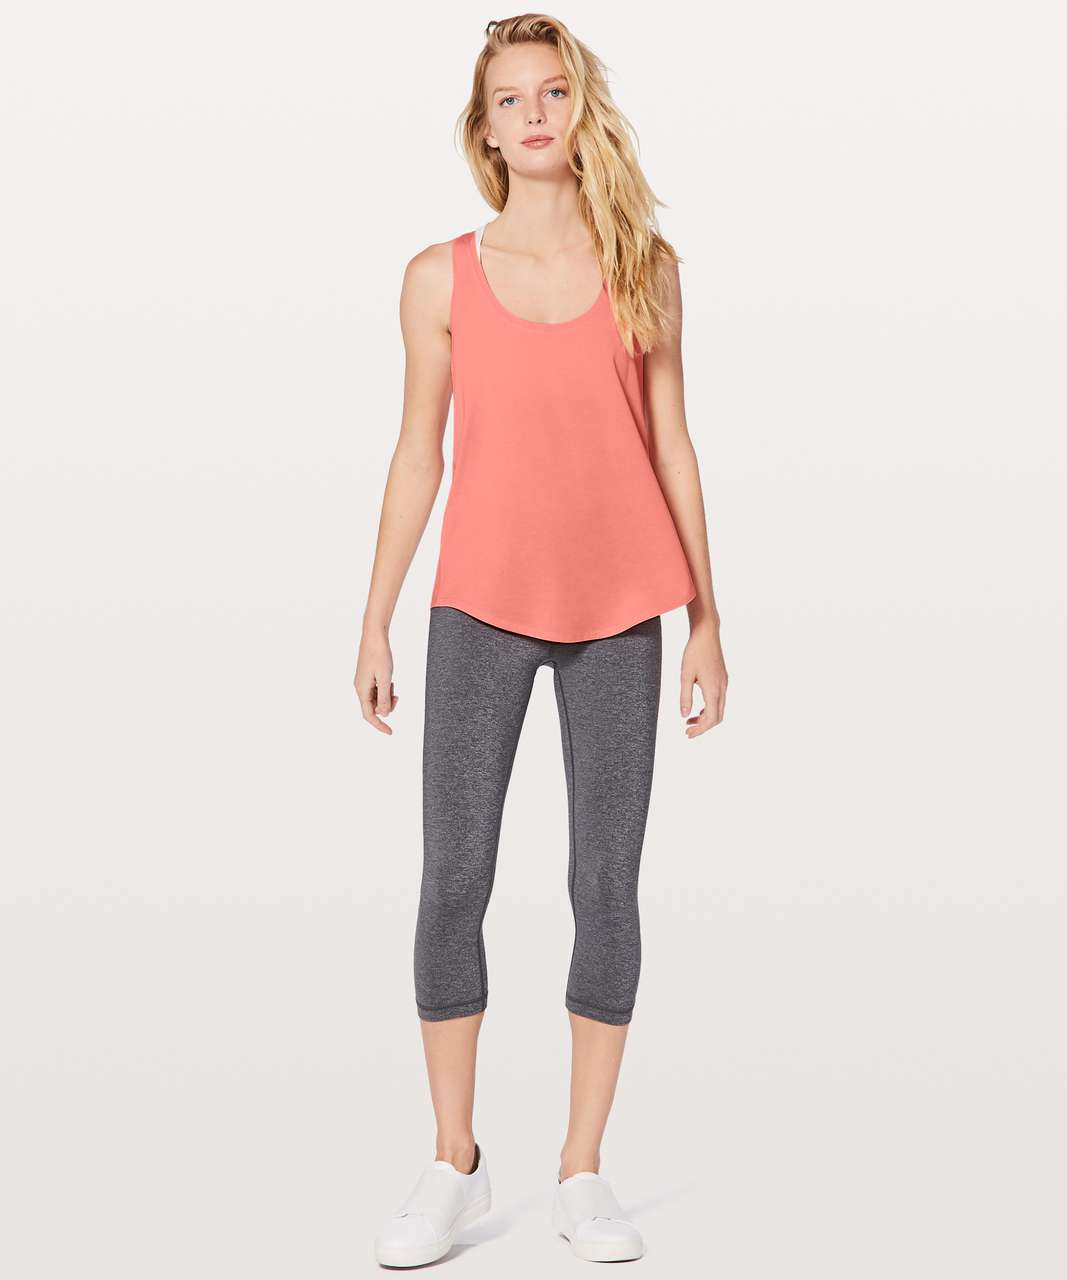 Lululemon Love Tank II - Light Coral